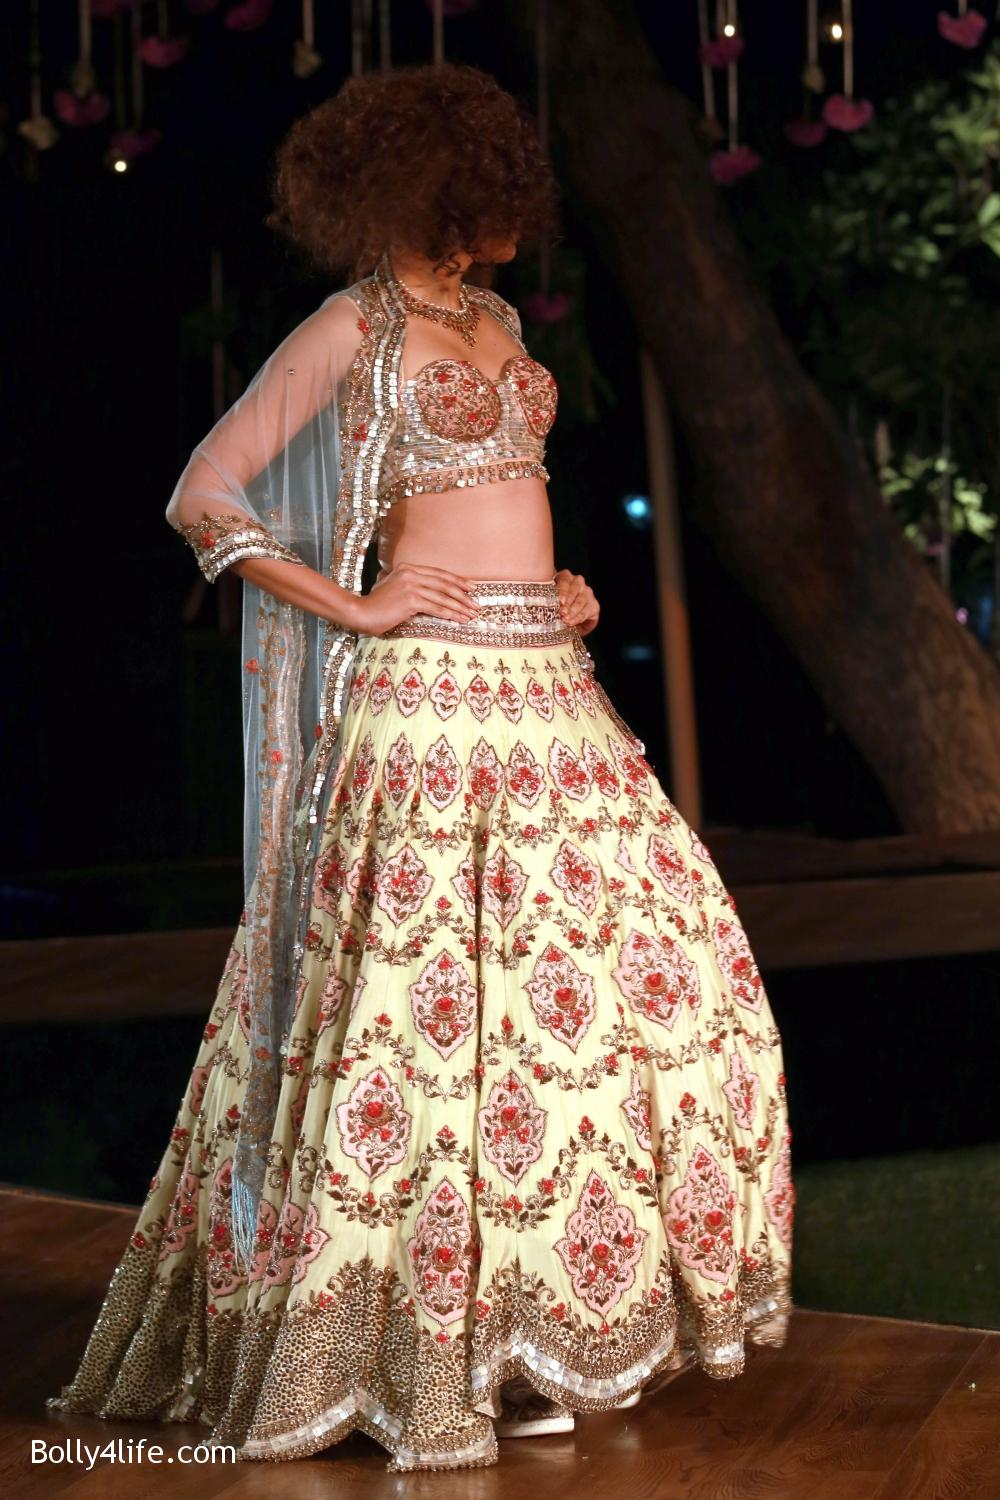 Divani-Fashion-Show-Ranveer-Singh-and-Vaani-Kapoor-1.jpg